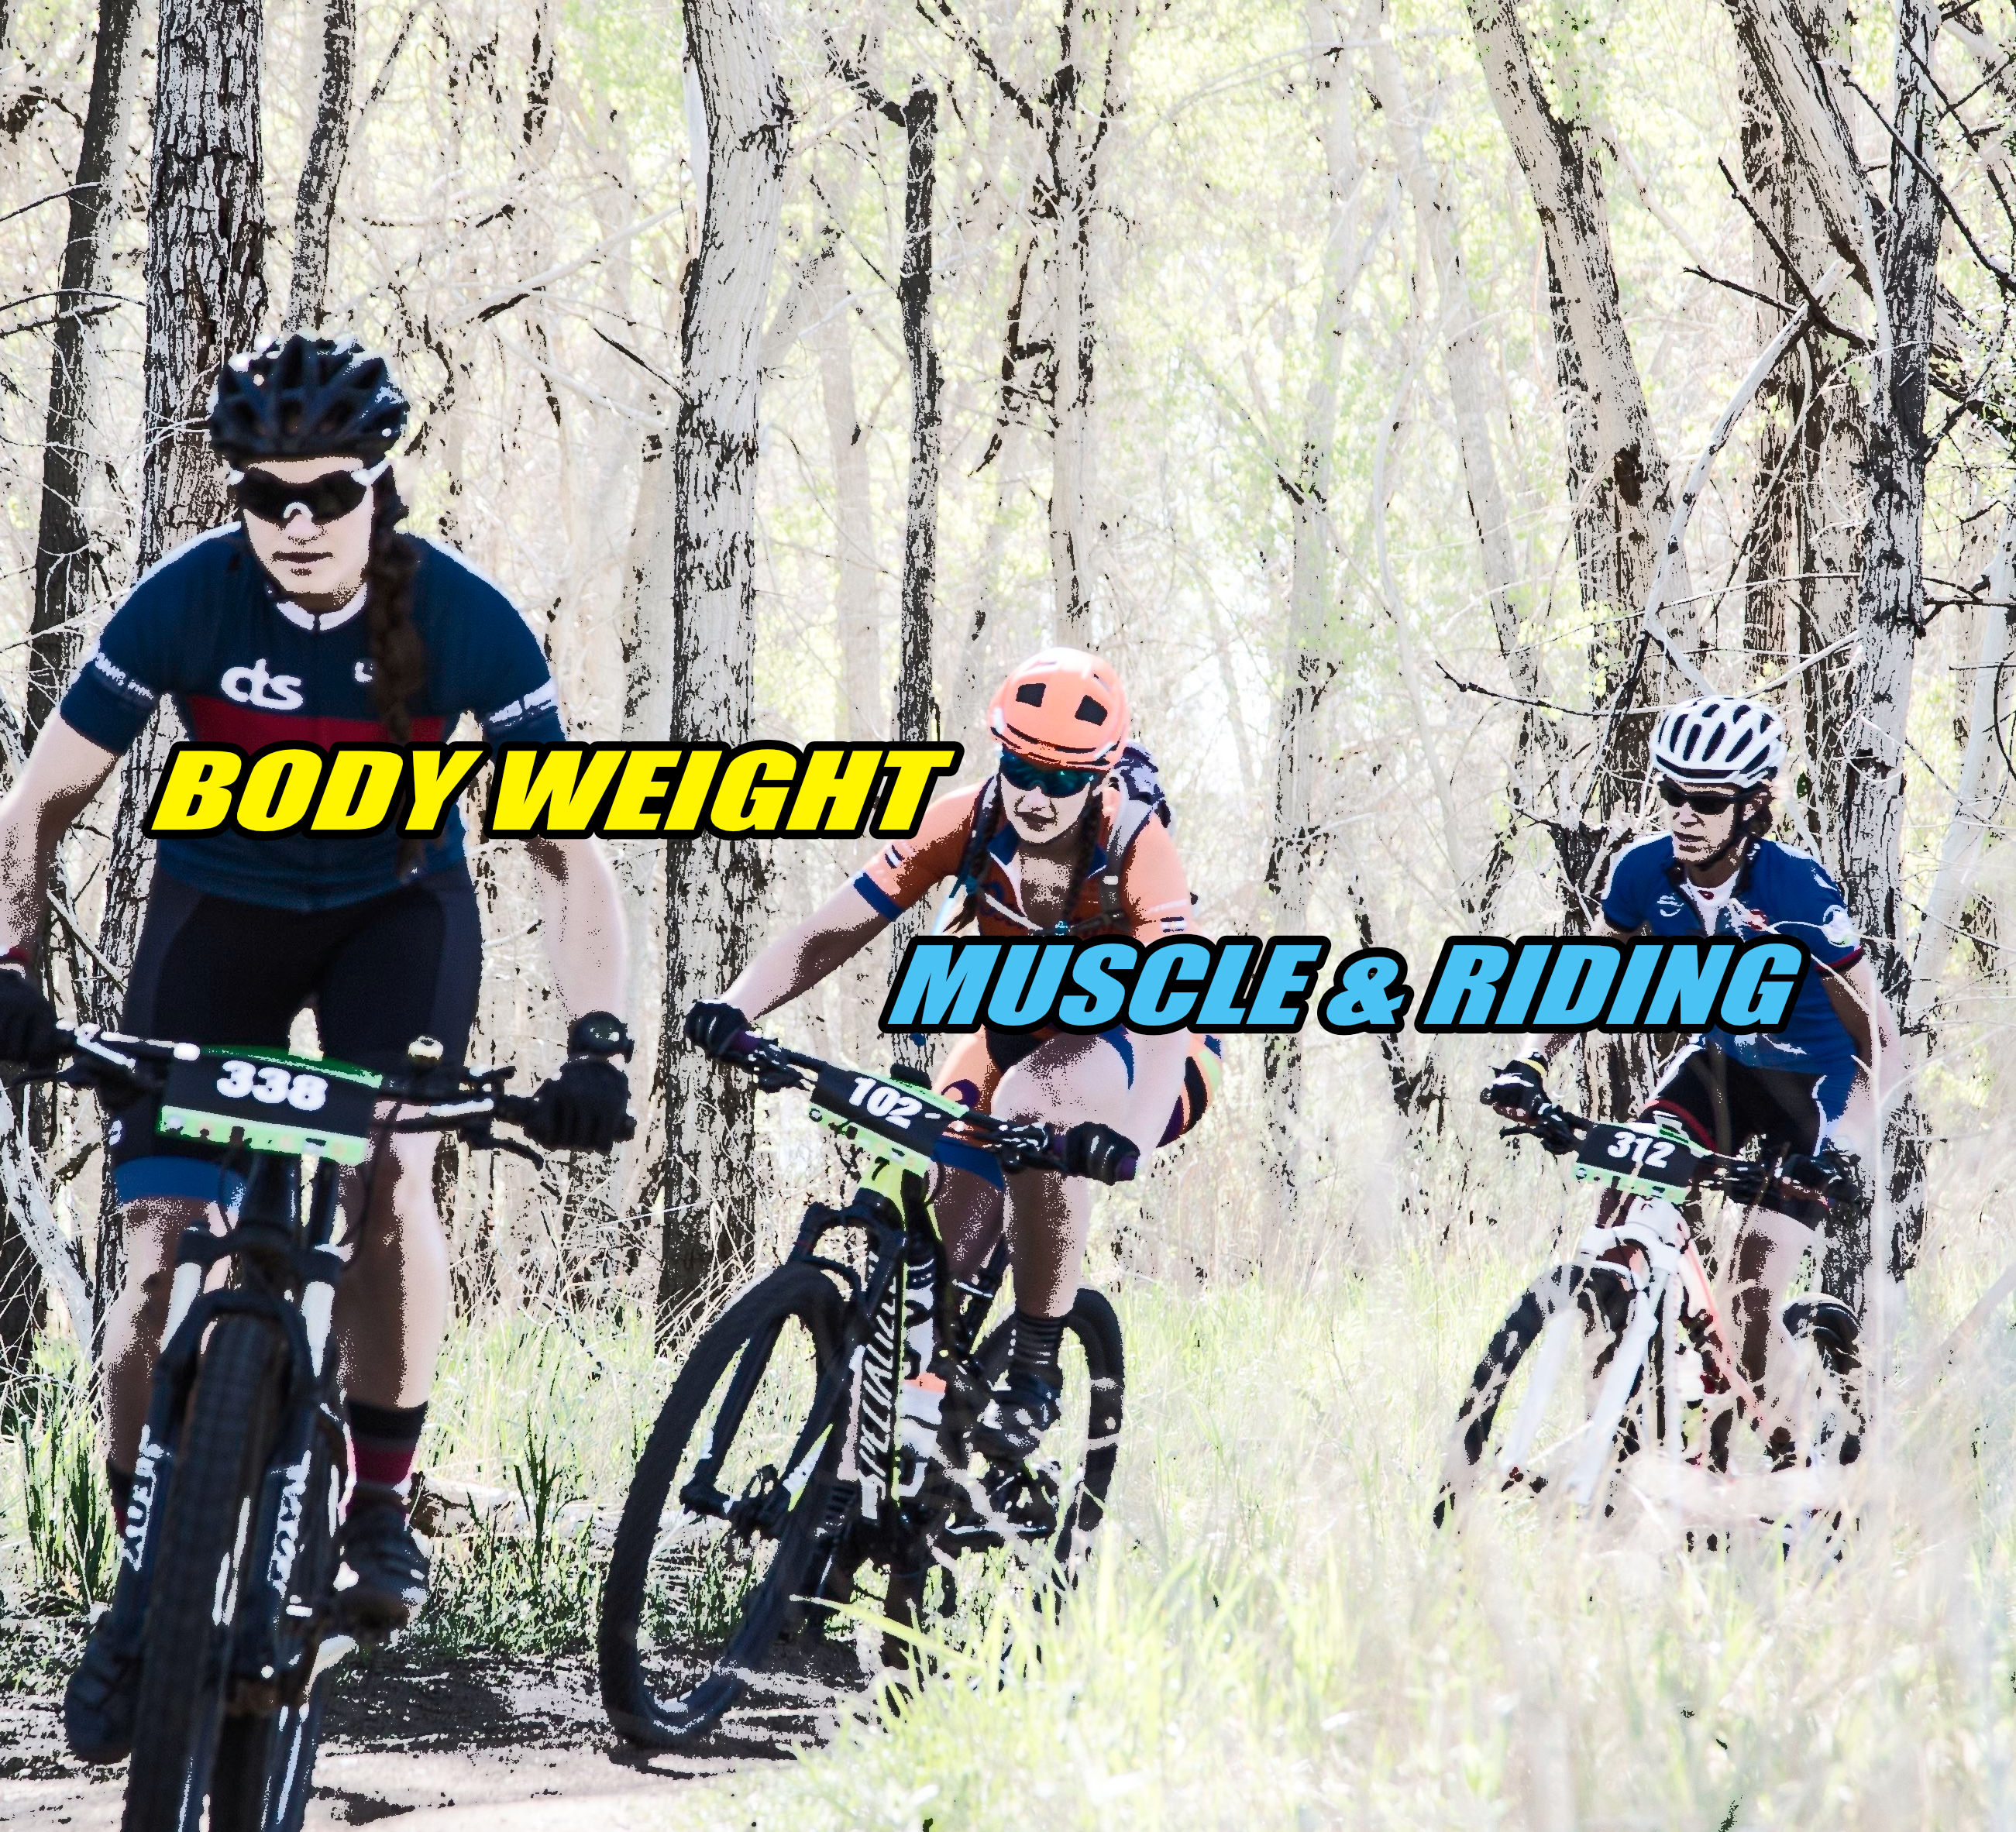 mtb body weight muscle riding momentum is your friend